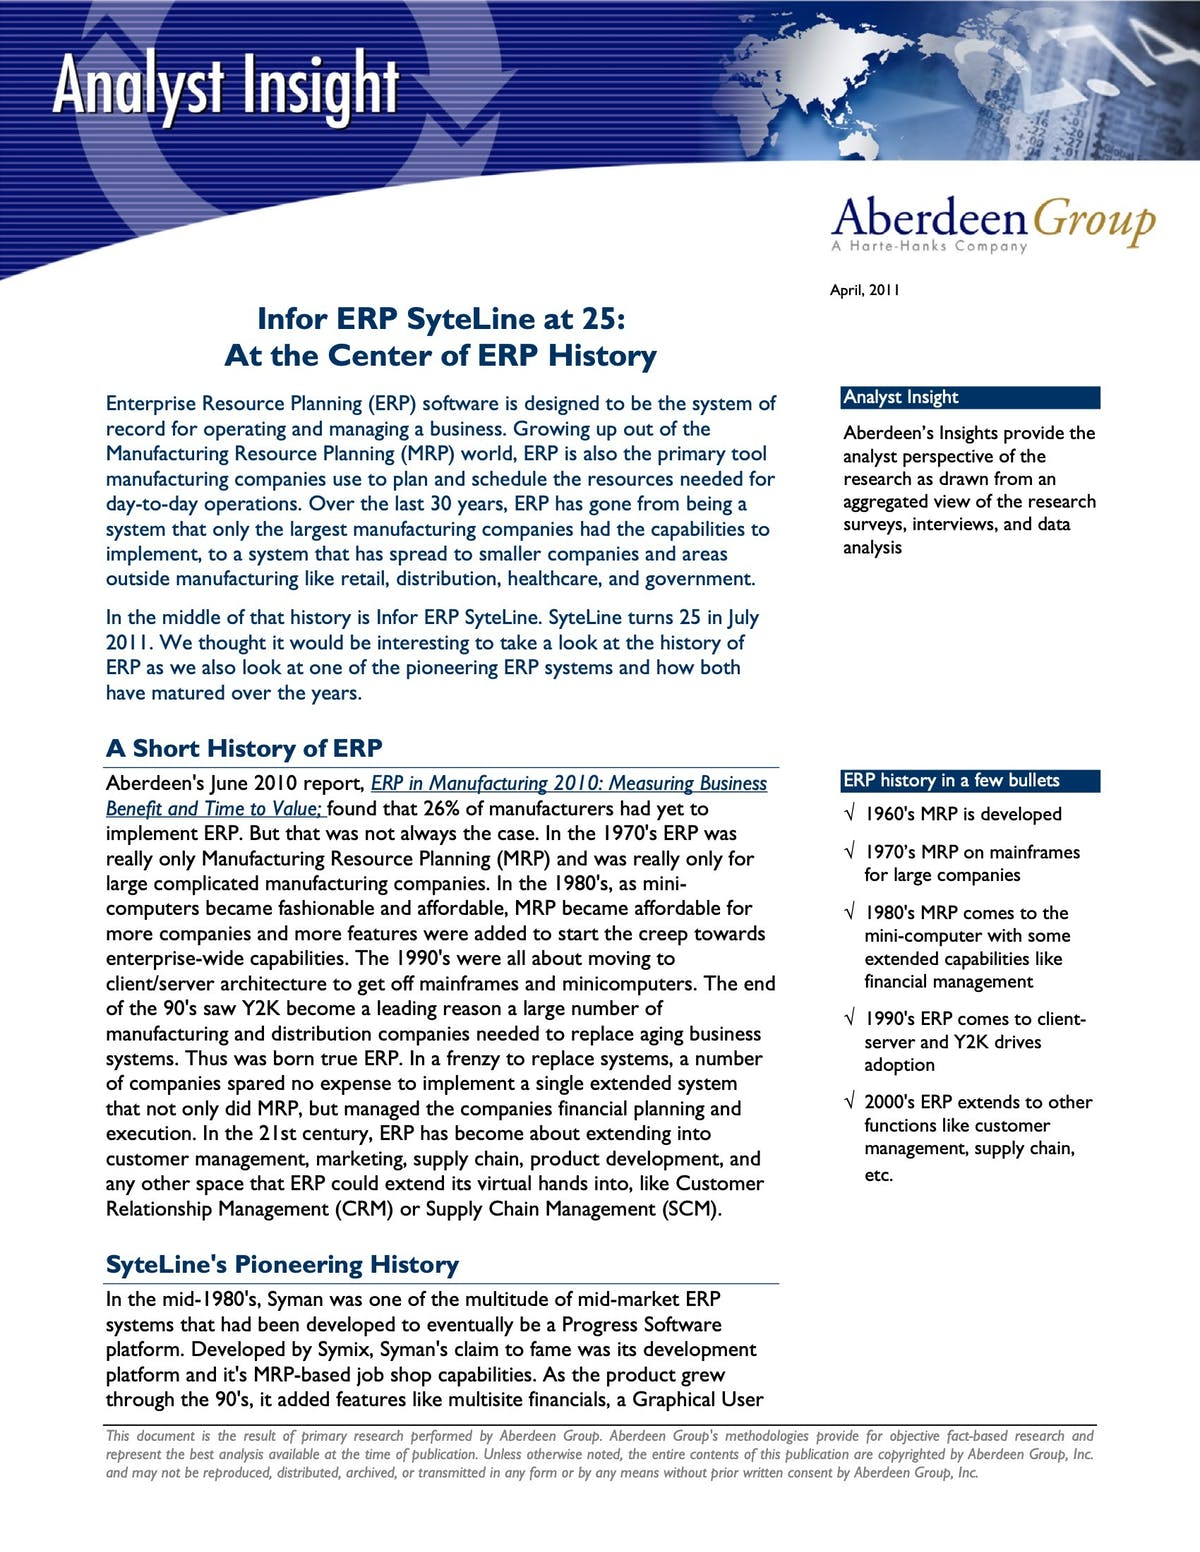 Infor CloudSuite Industrial (Syteline) White Paper - Infor ERP SyteLine at 25: At the Center of ERP History